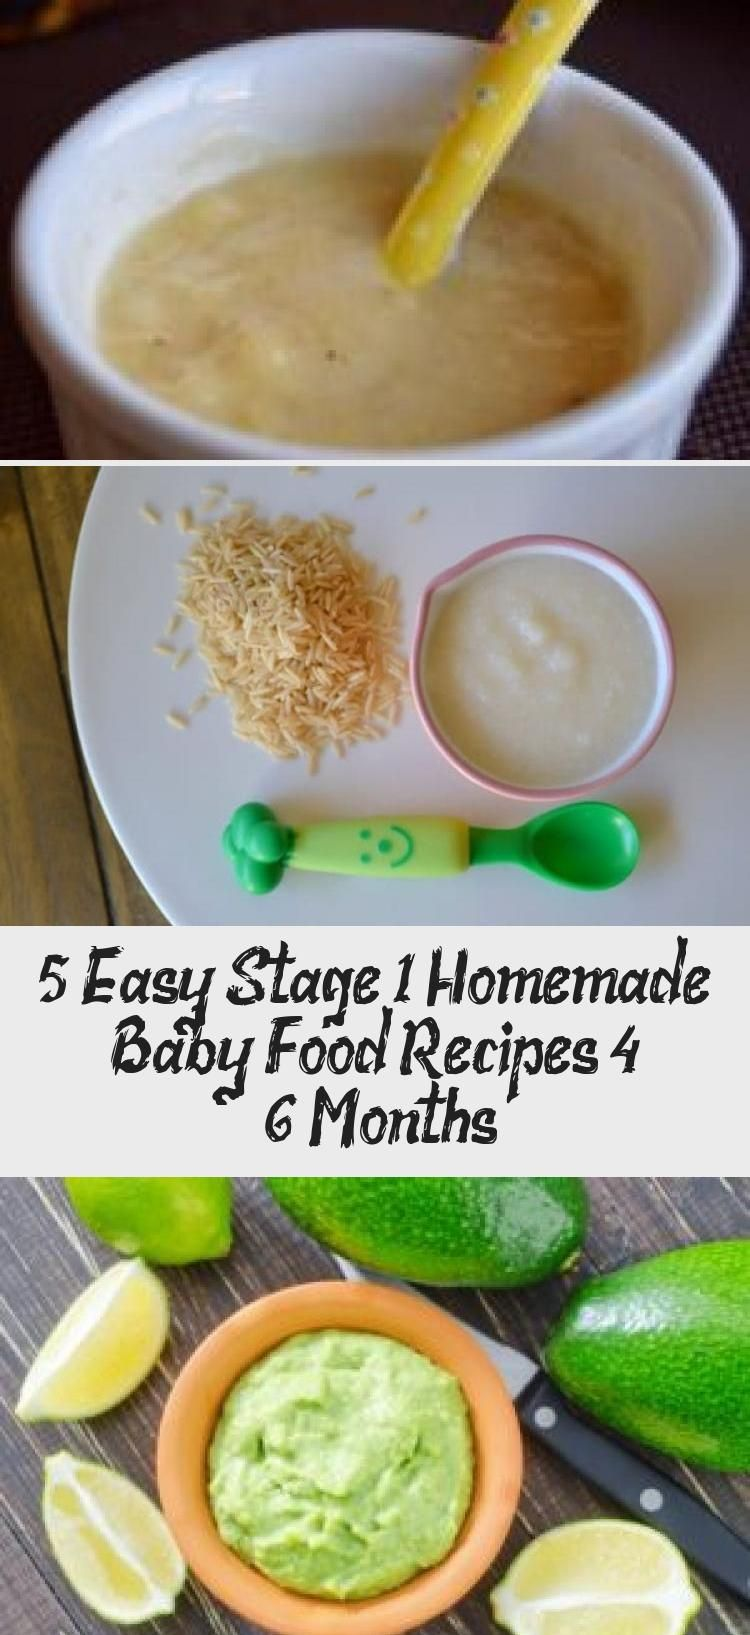 5 easy stage 1 homemade baby food recipes for babies 4 - 6 ...